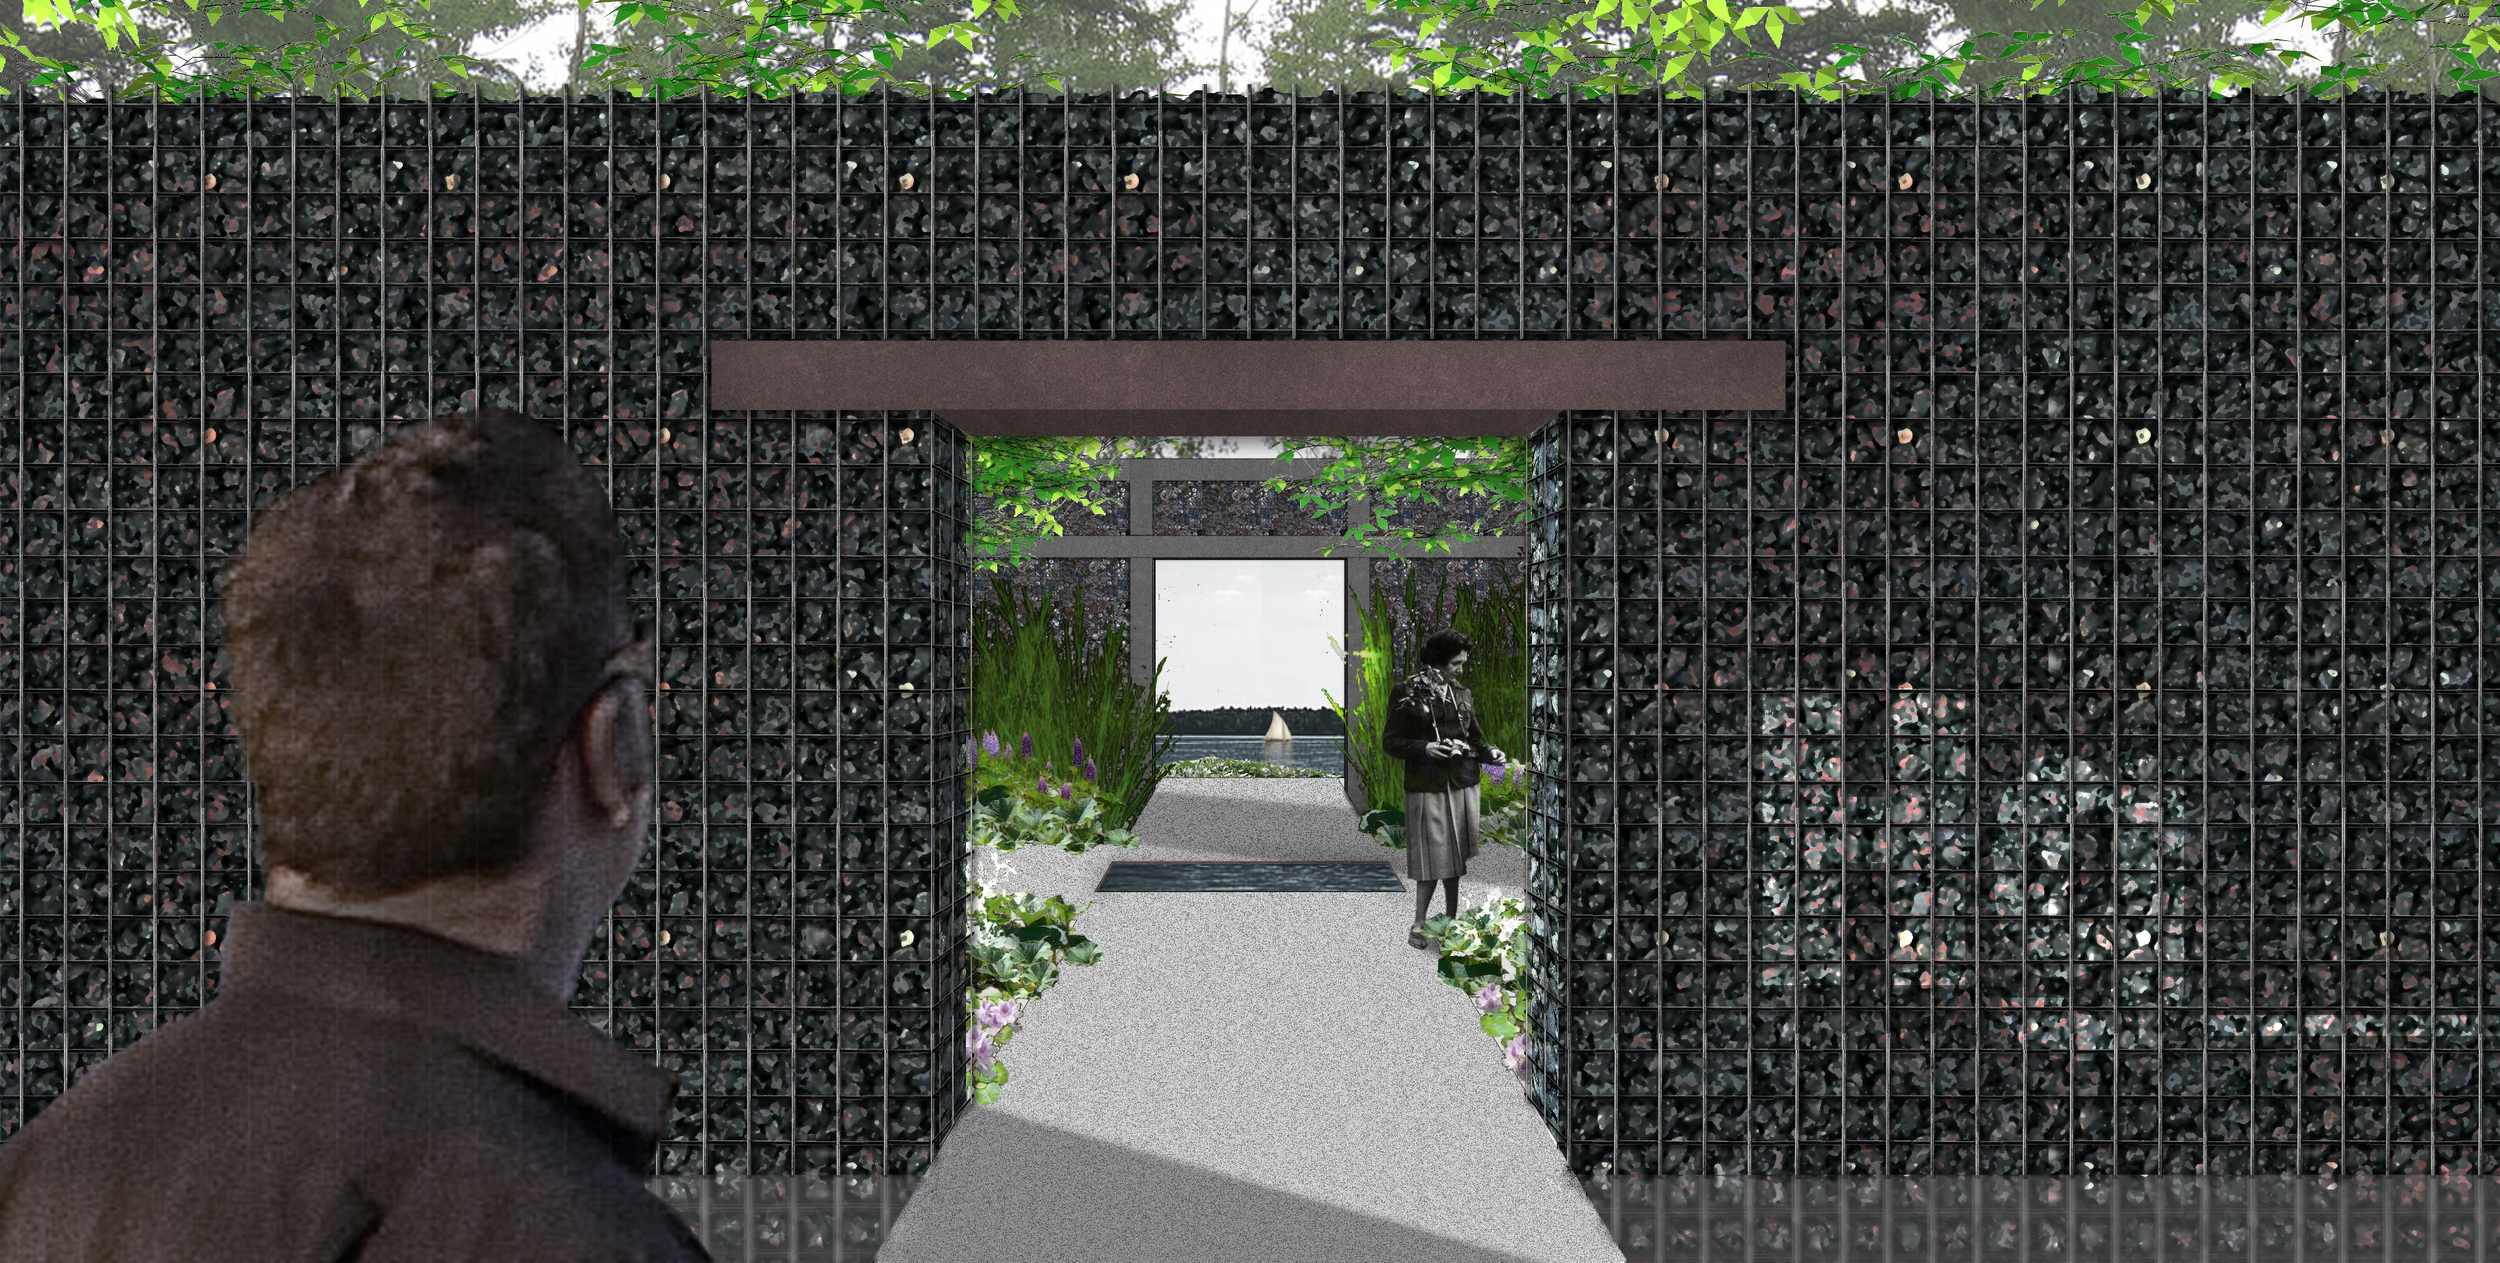 A view through the walls (coal and aluminum gabions)of the garden frames up the river - our design proposal reveals principal pollutants in the river. (click all images on page for larger view)